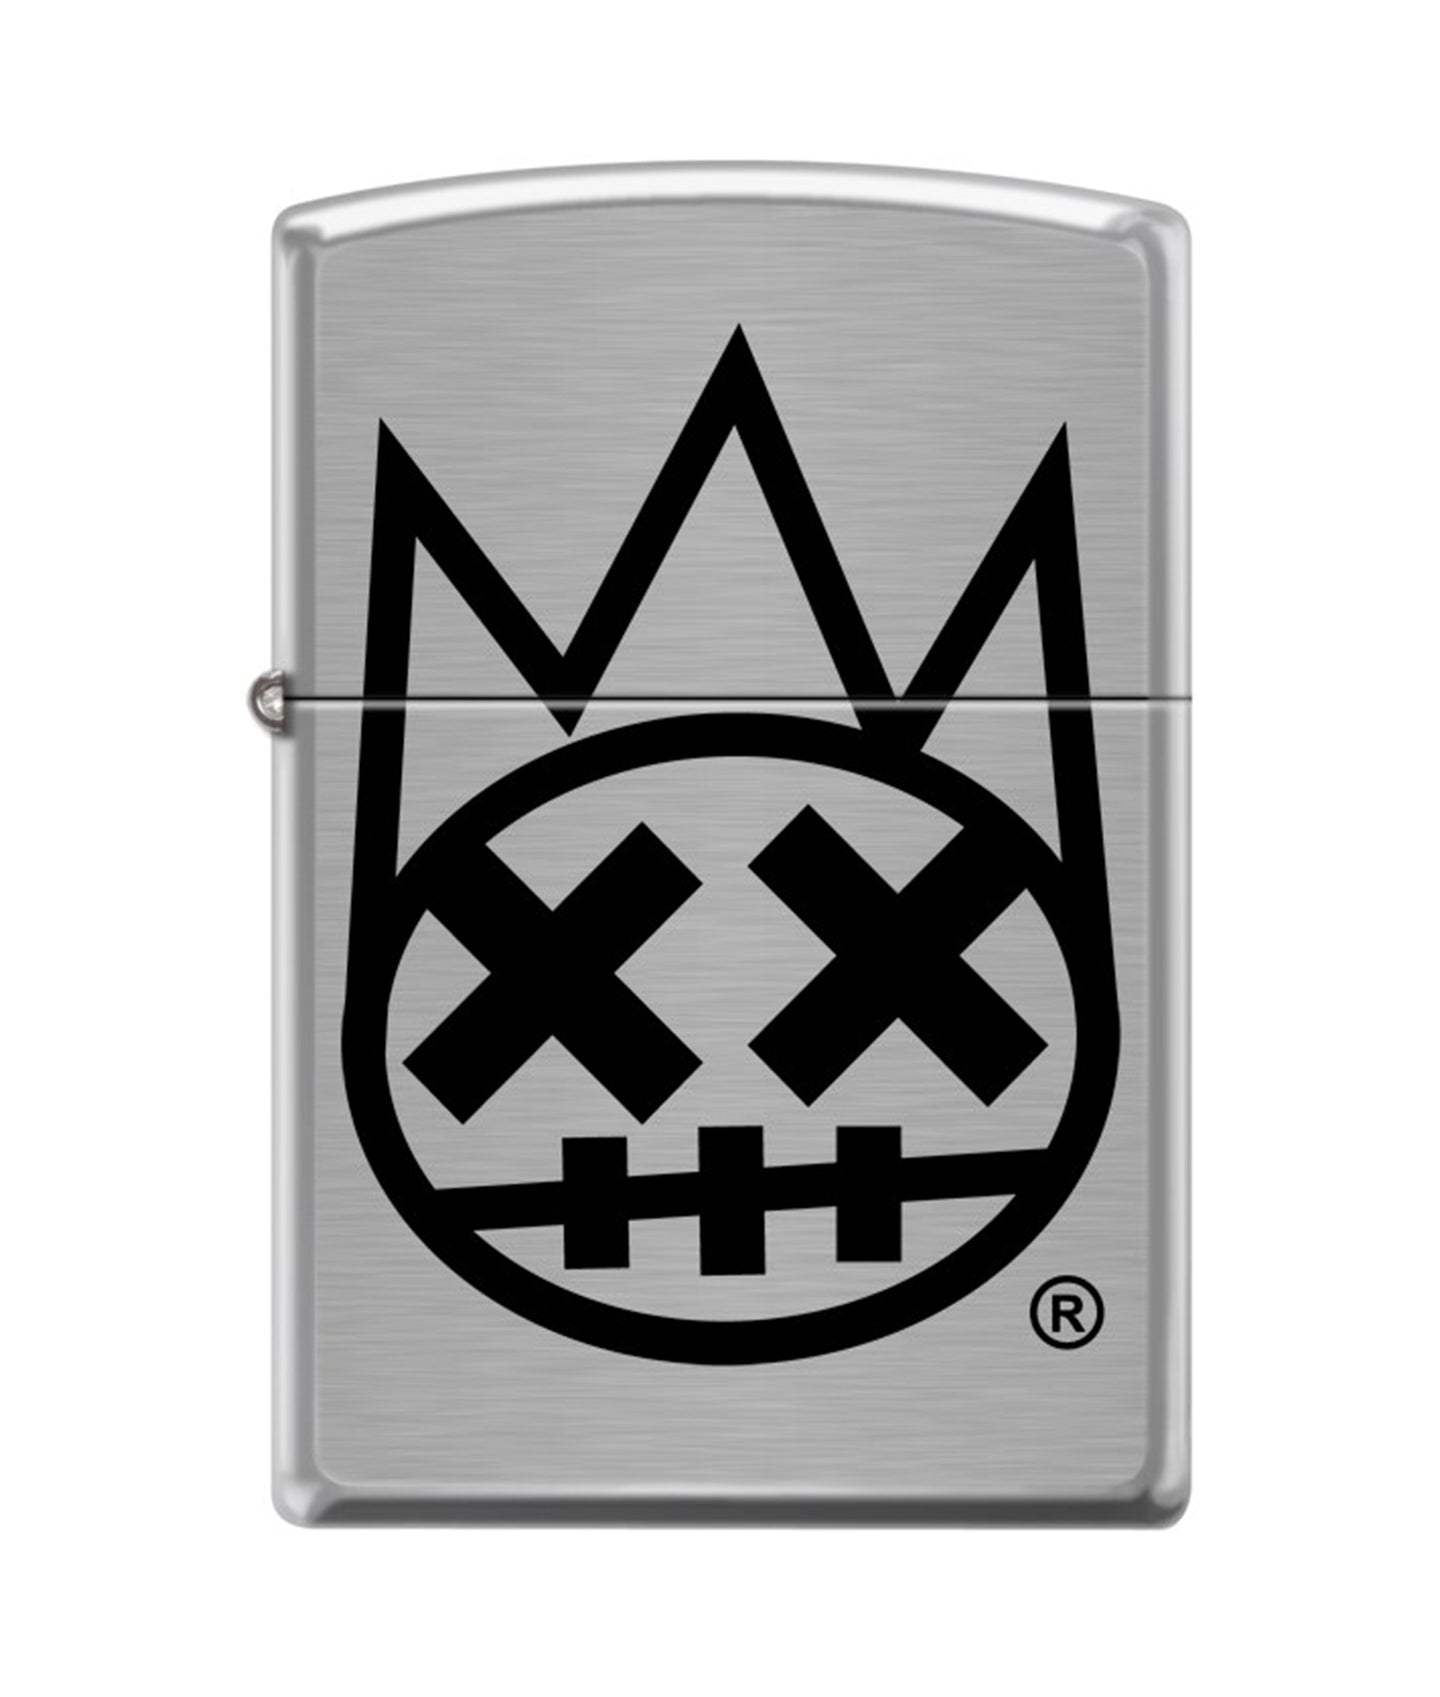 CULT SHIMUCHAN ZIPPO LIGHTER SILVER/BLACK